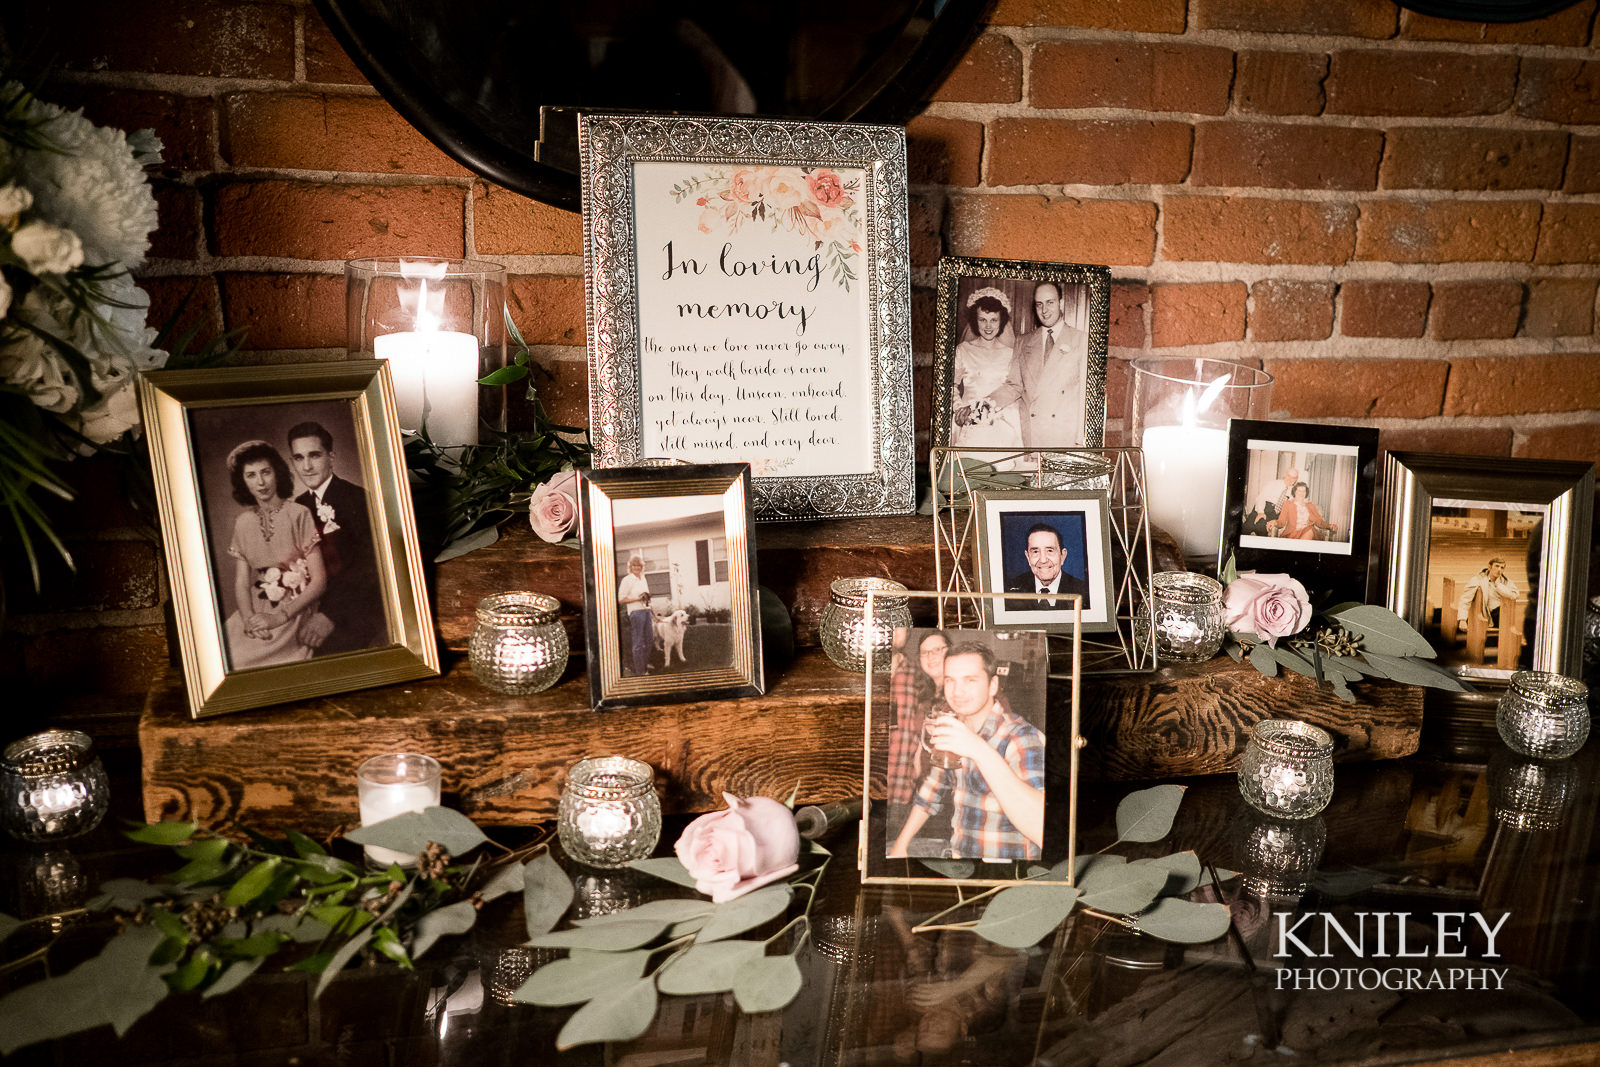 39-Pearl-St-Grill-Wedding-Reception-Buffalo-NY-Kniley-Photography.jpg